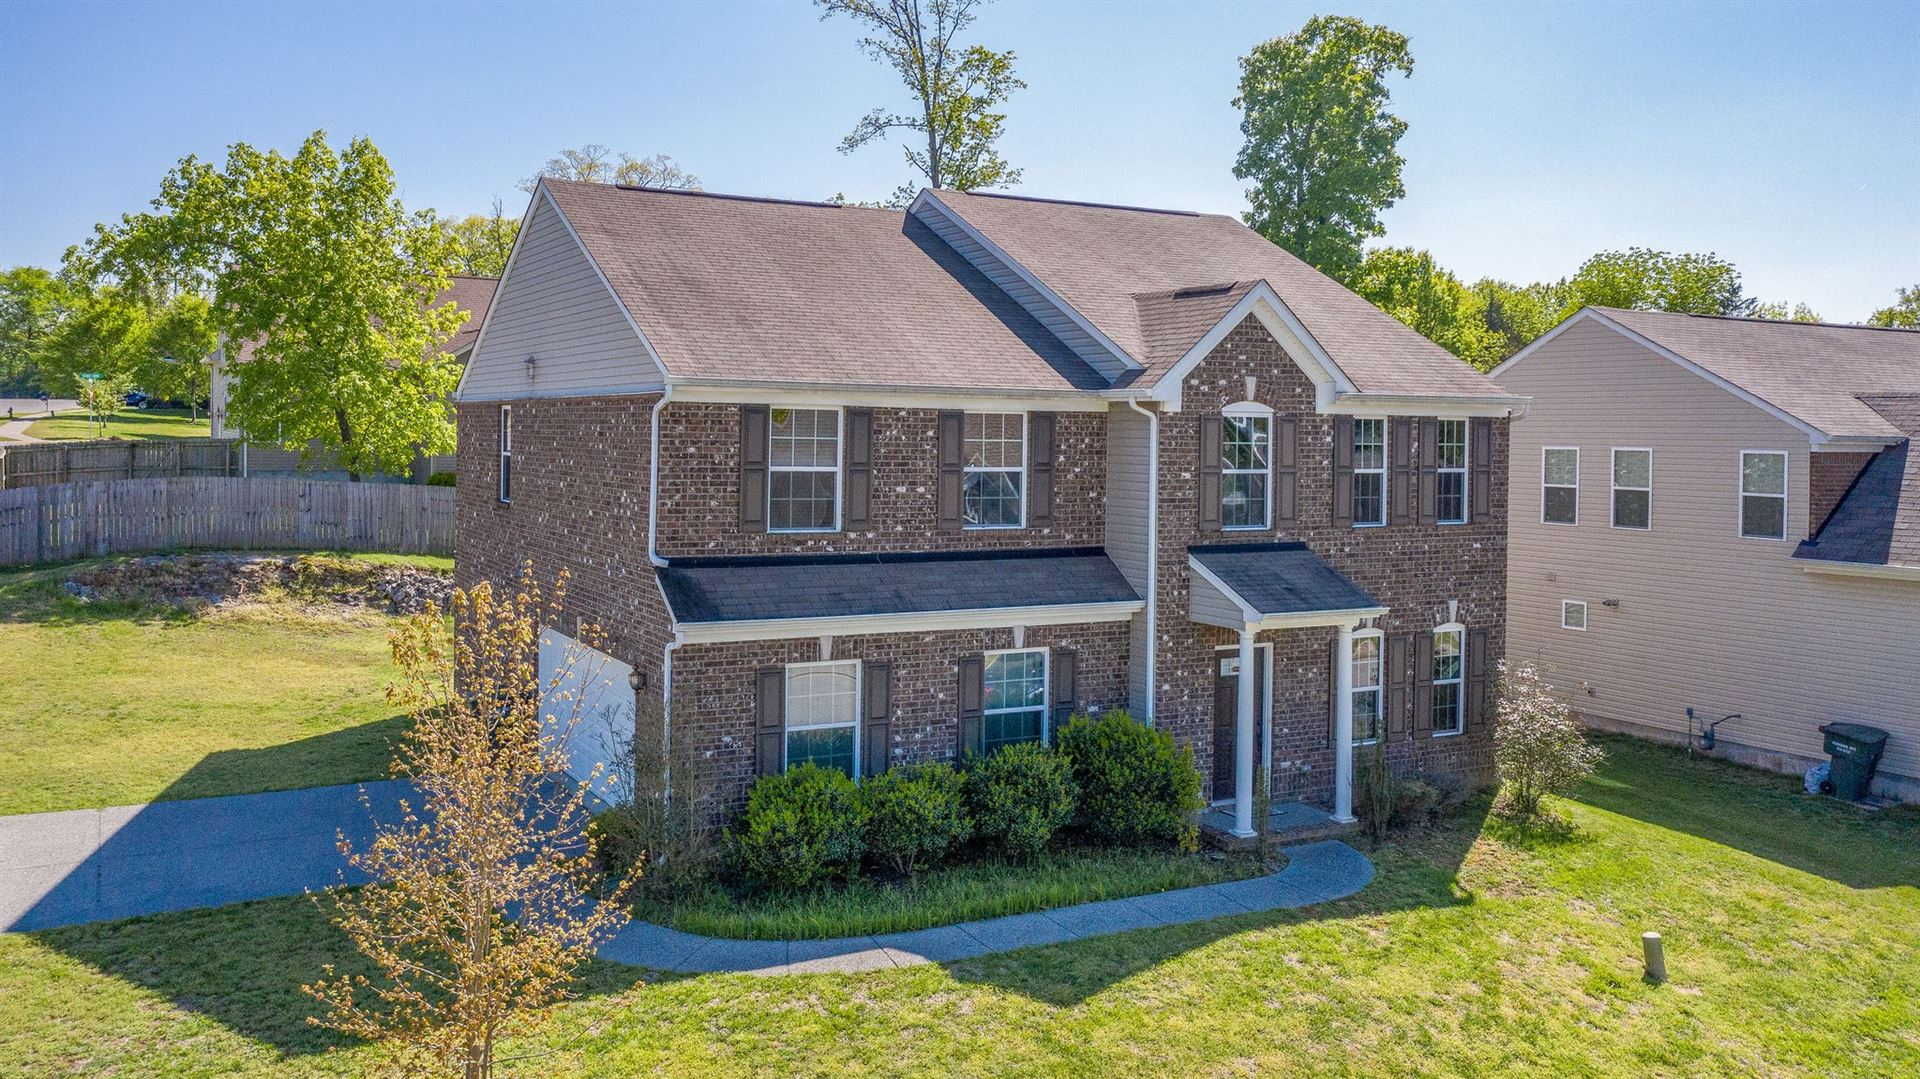 Photo of 2801 Jenoaks Pass, Hermitage, TN 37076 (MLS # 2142276)